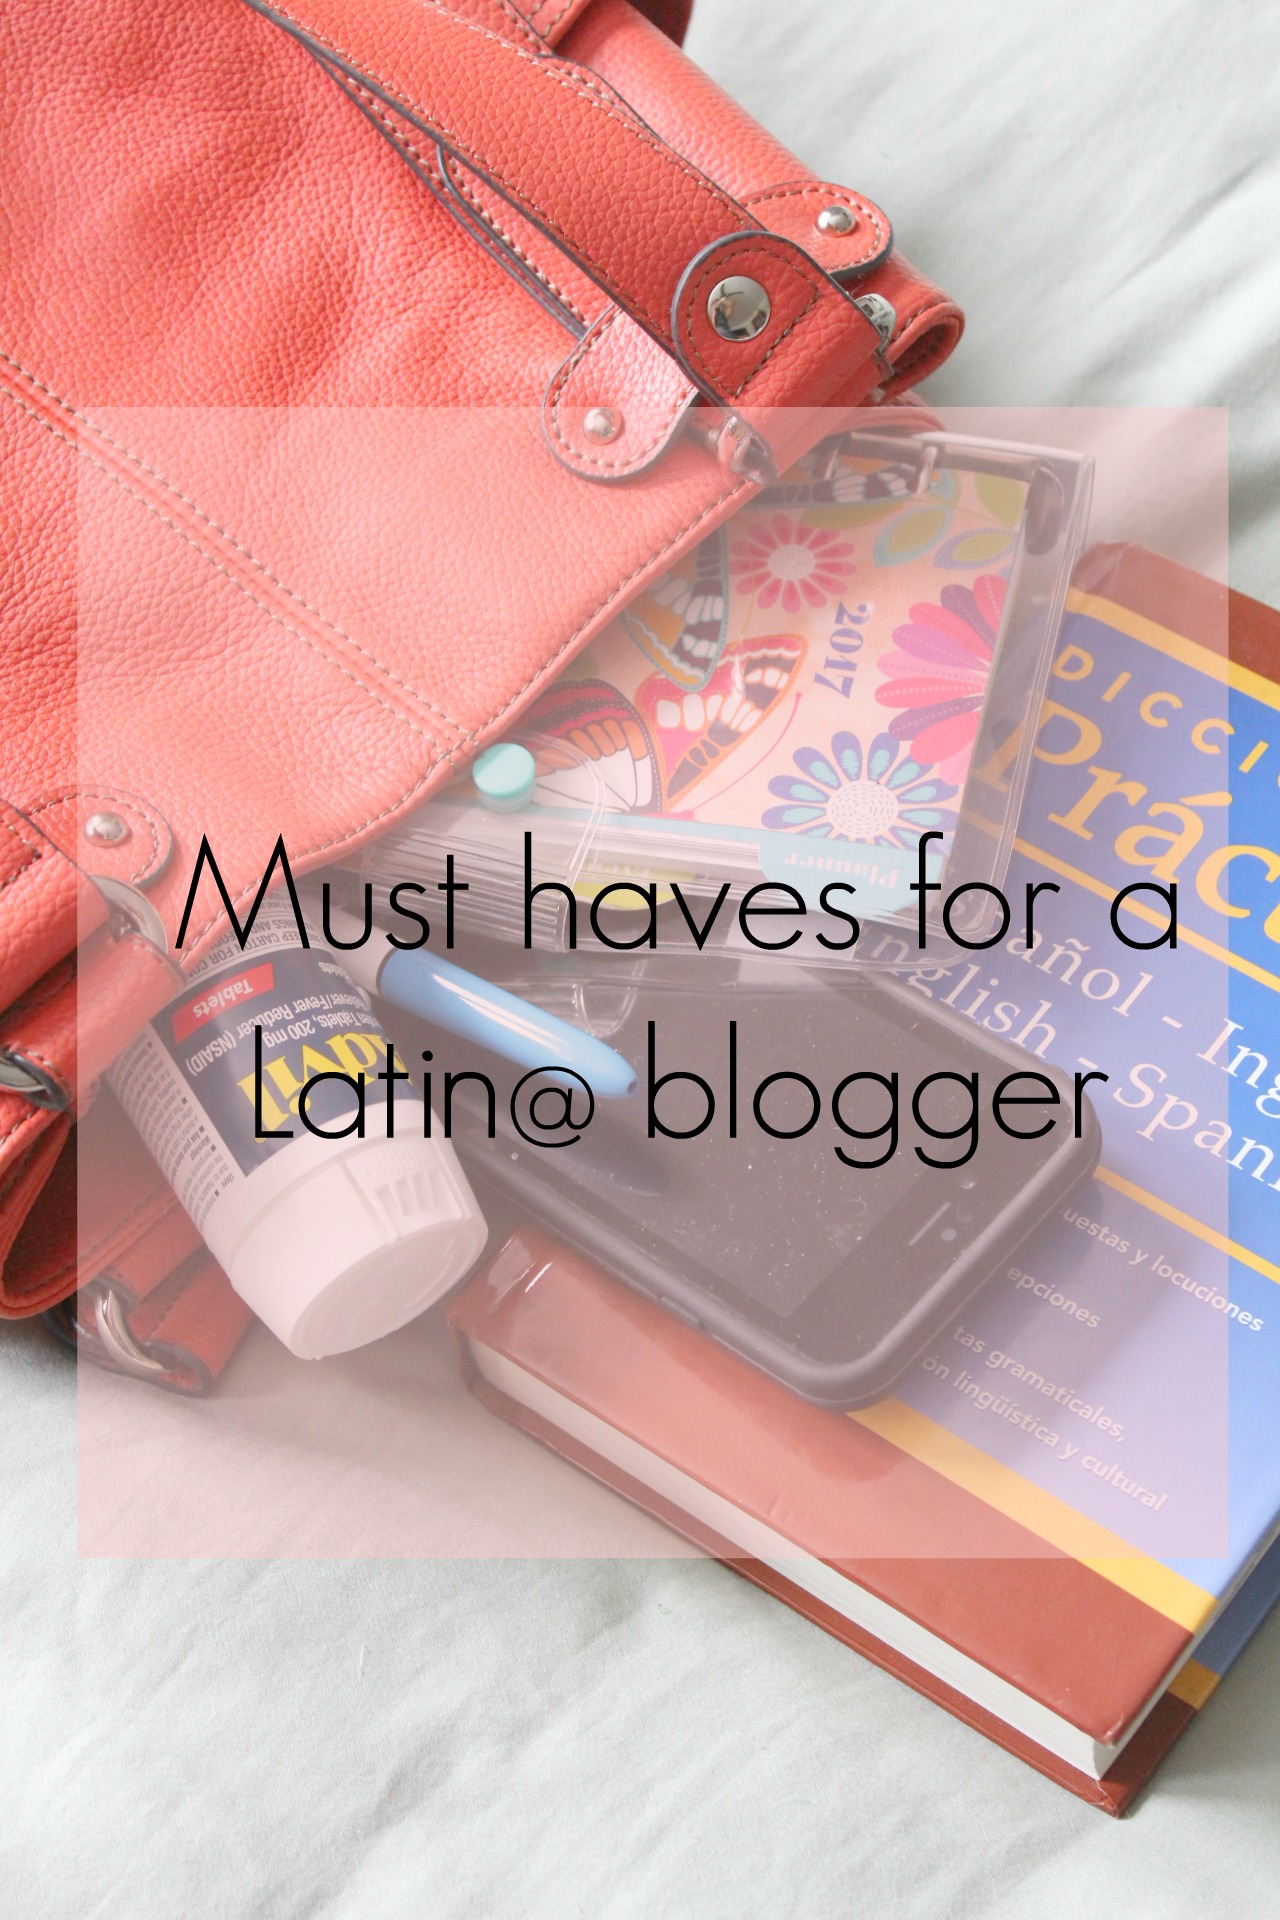 must-haves-for-a-latina-blogger